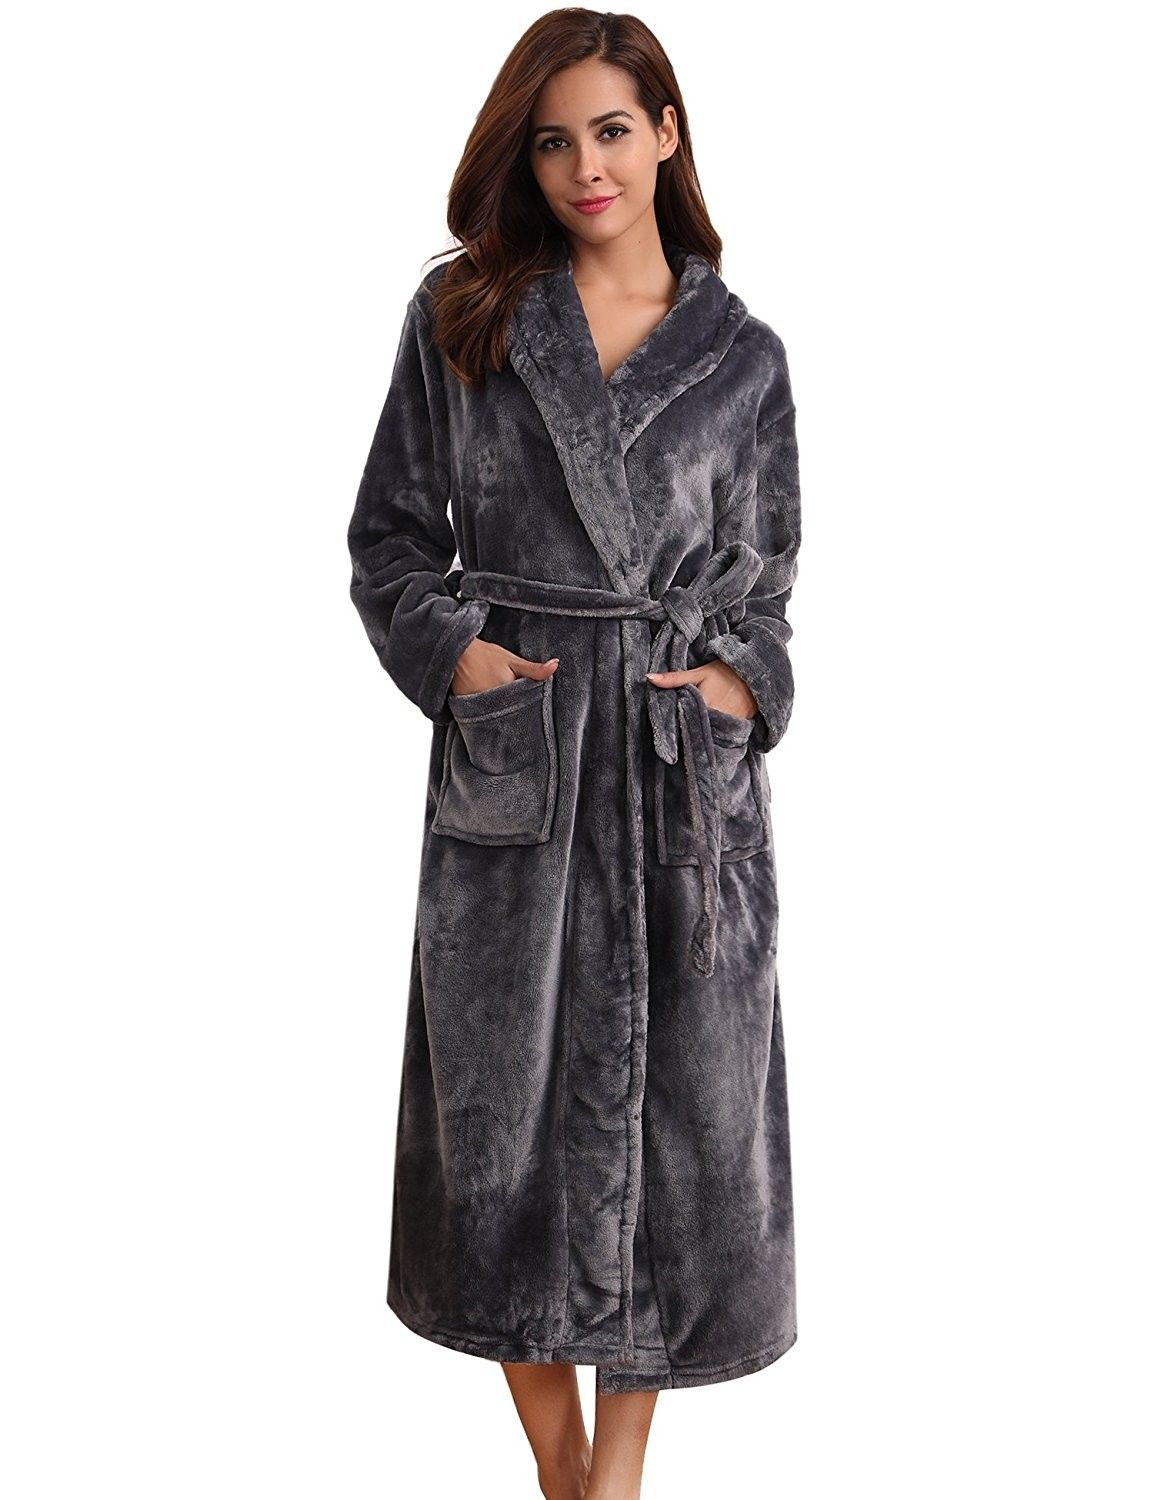 Women s Plush Soft Warm Coral Fleece Bathrobe Robes - Dark Grey ... 729f4ee01